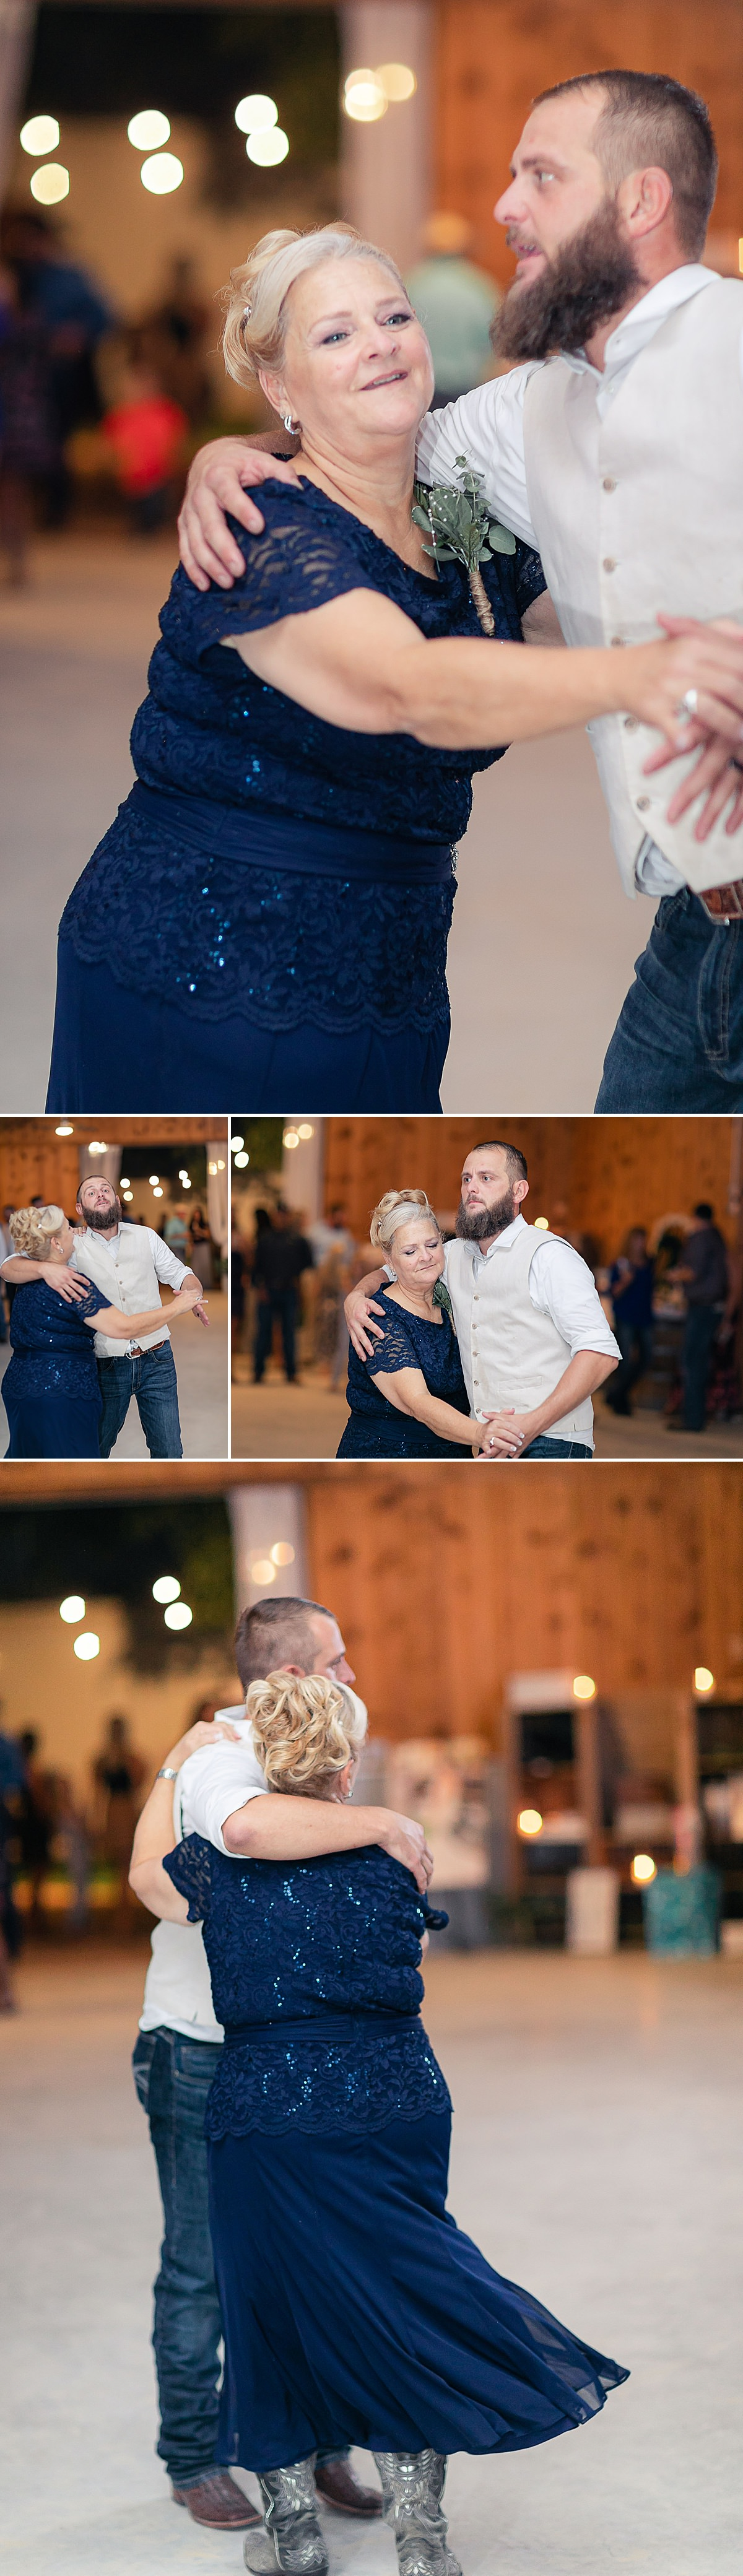 Rustic-Texas-Wedding-Hollow-Creek-Ranch-Carly-Barton-Photography_0031.jpg